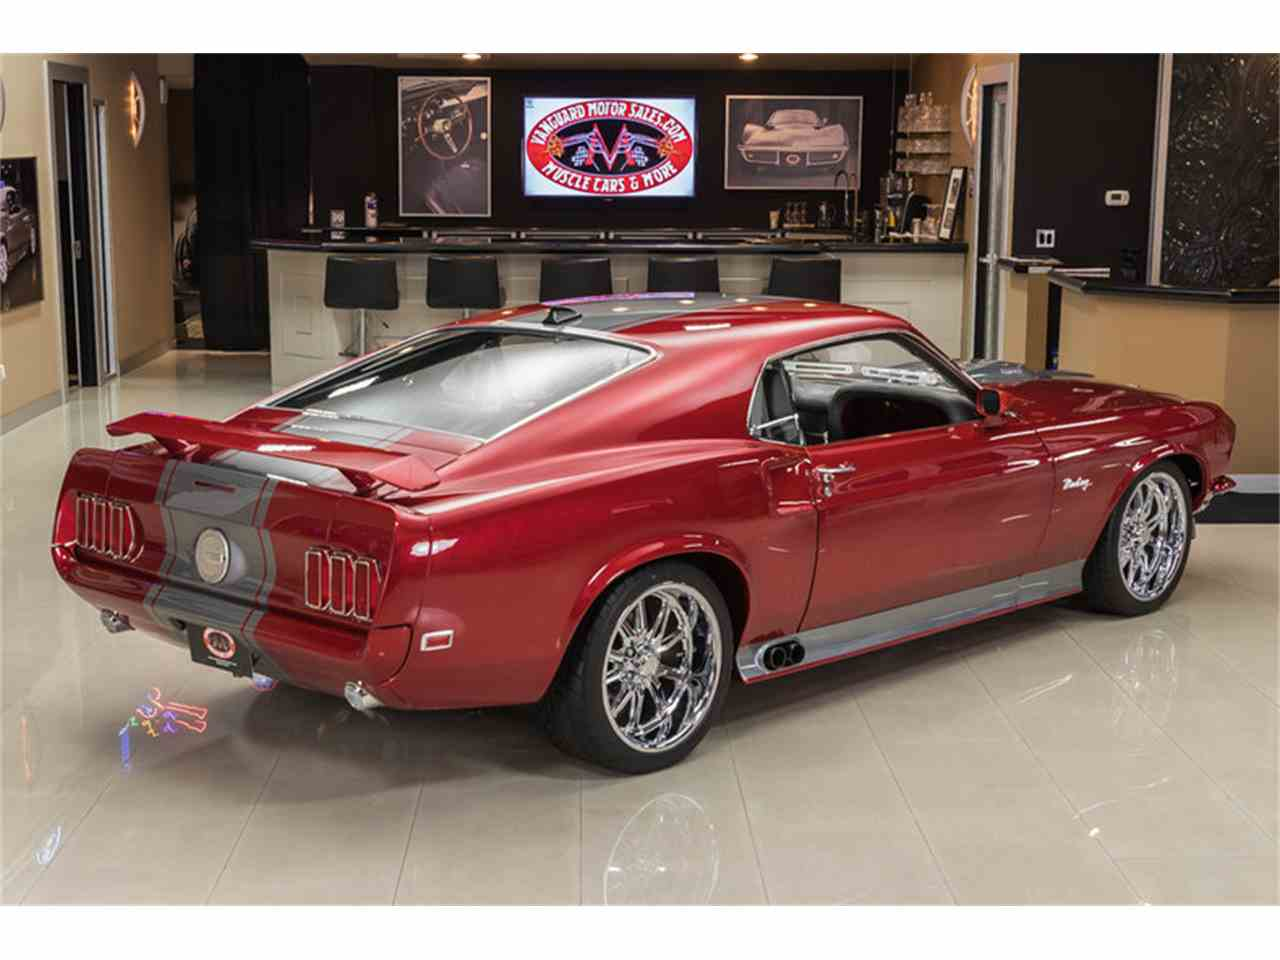 1969 Ford Mustang Fastback Restomod for Sale   ClassicCars.com   CC-987992